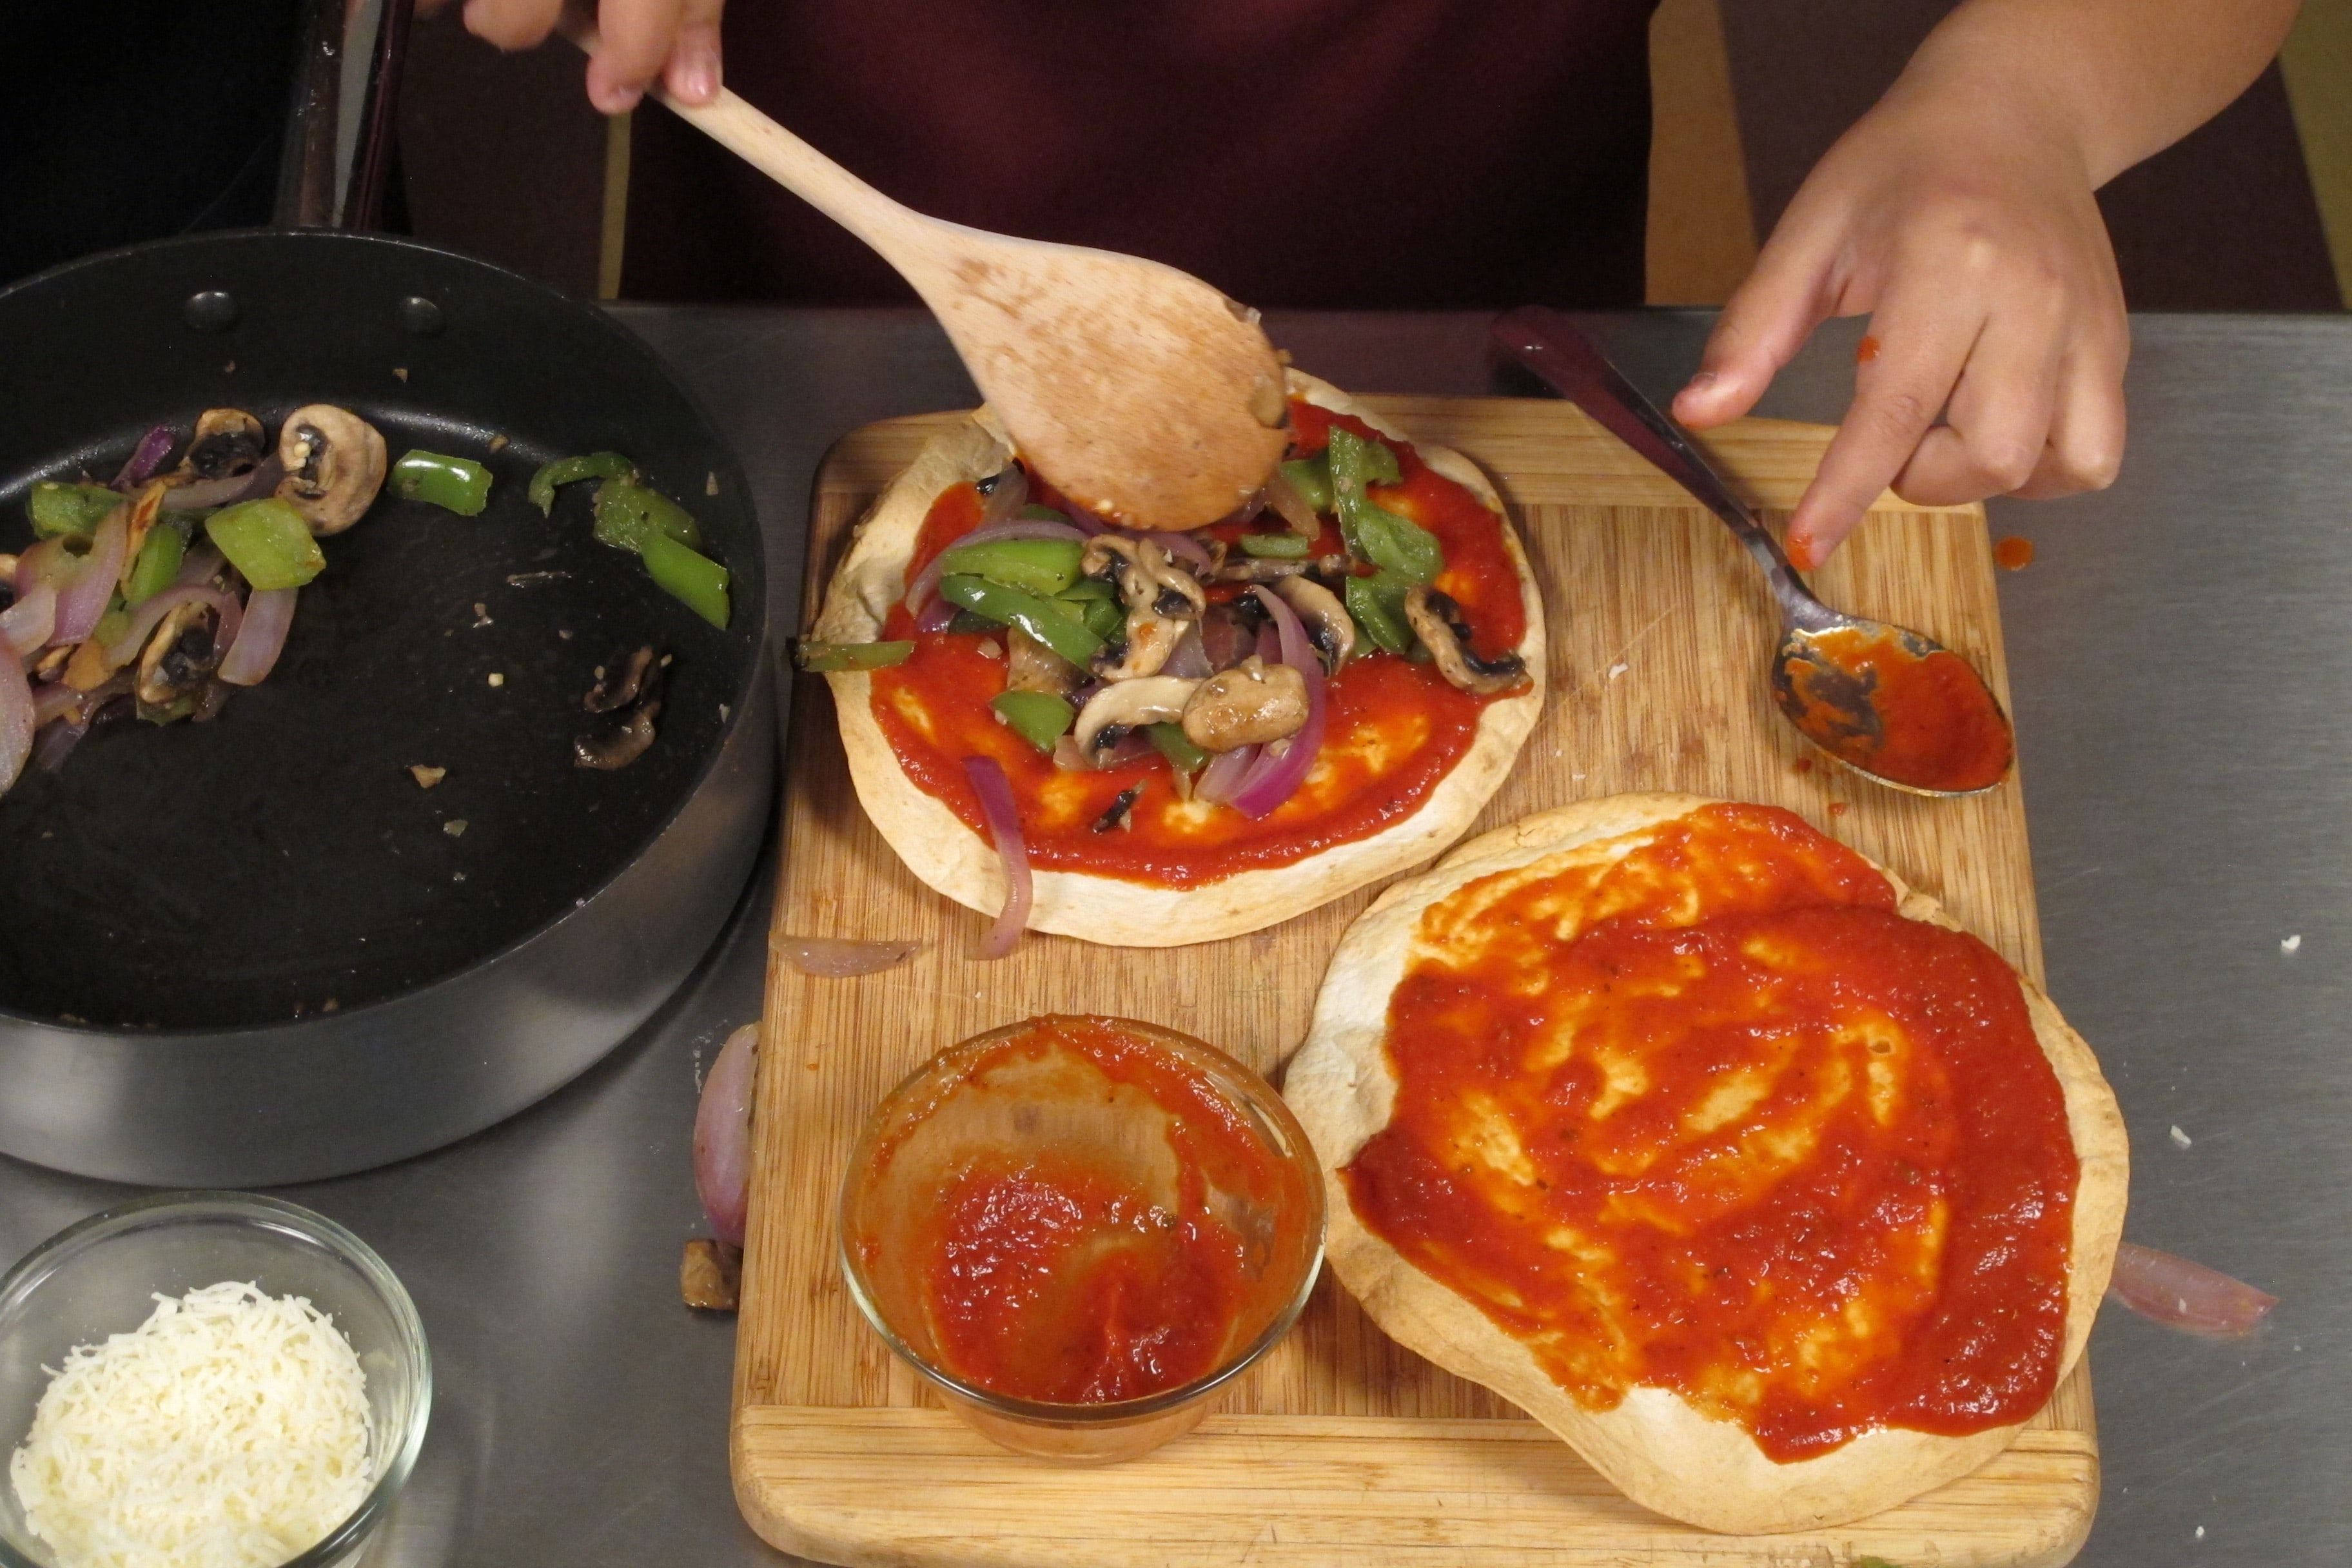 Spread 2 tablespoons of tomato sauce and a bit of the vegetable mixture onto each tortilla crust.